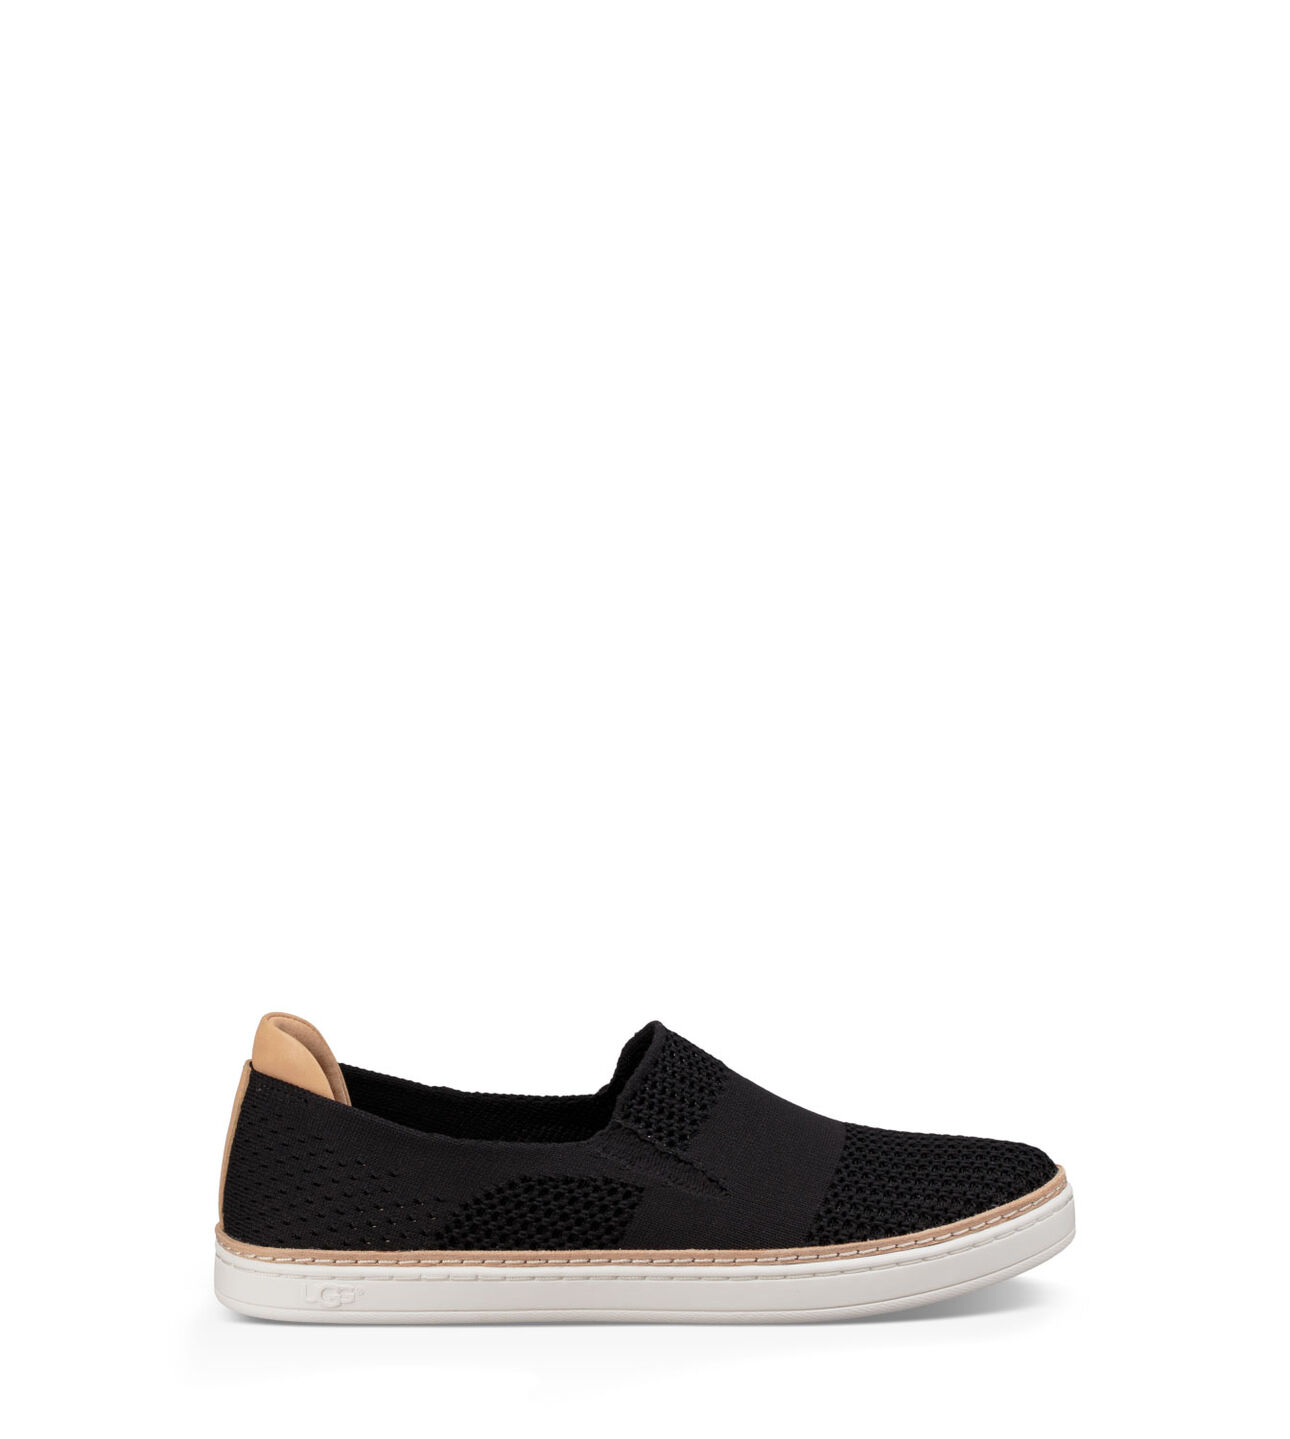 efd33a2be2d Sammy Slip-On